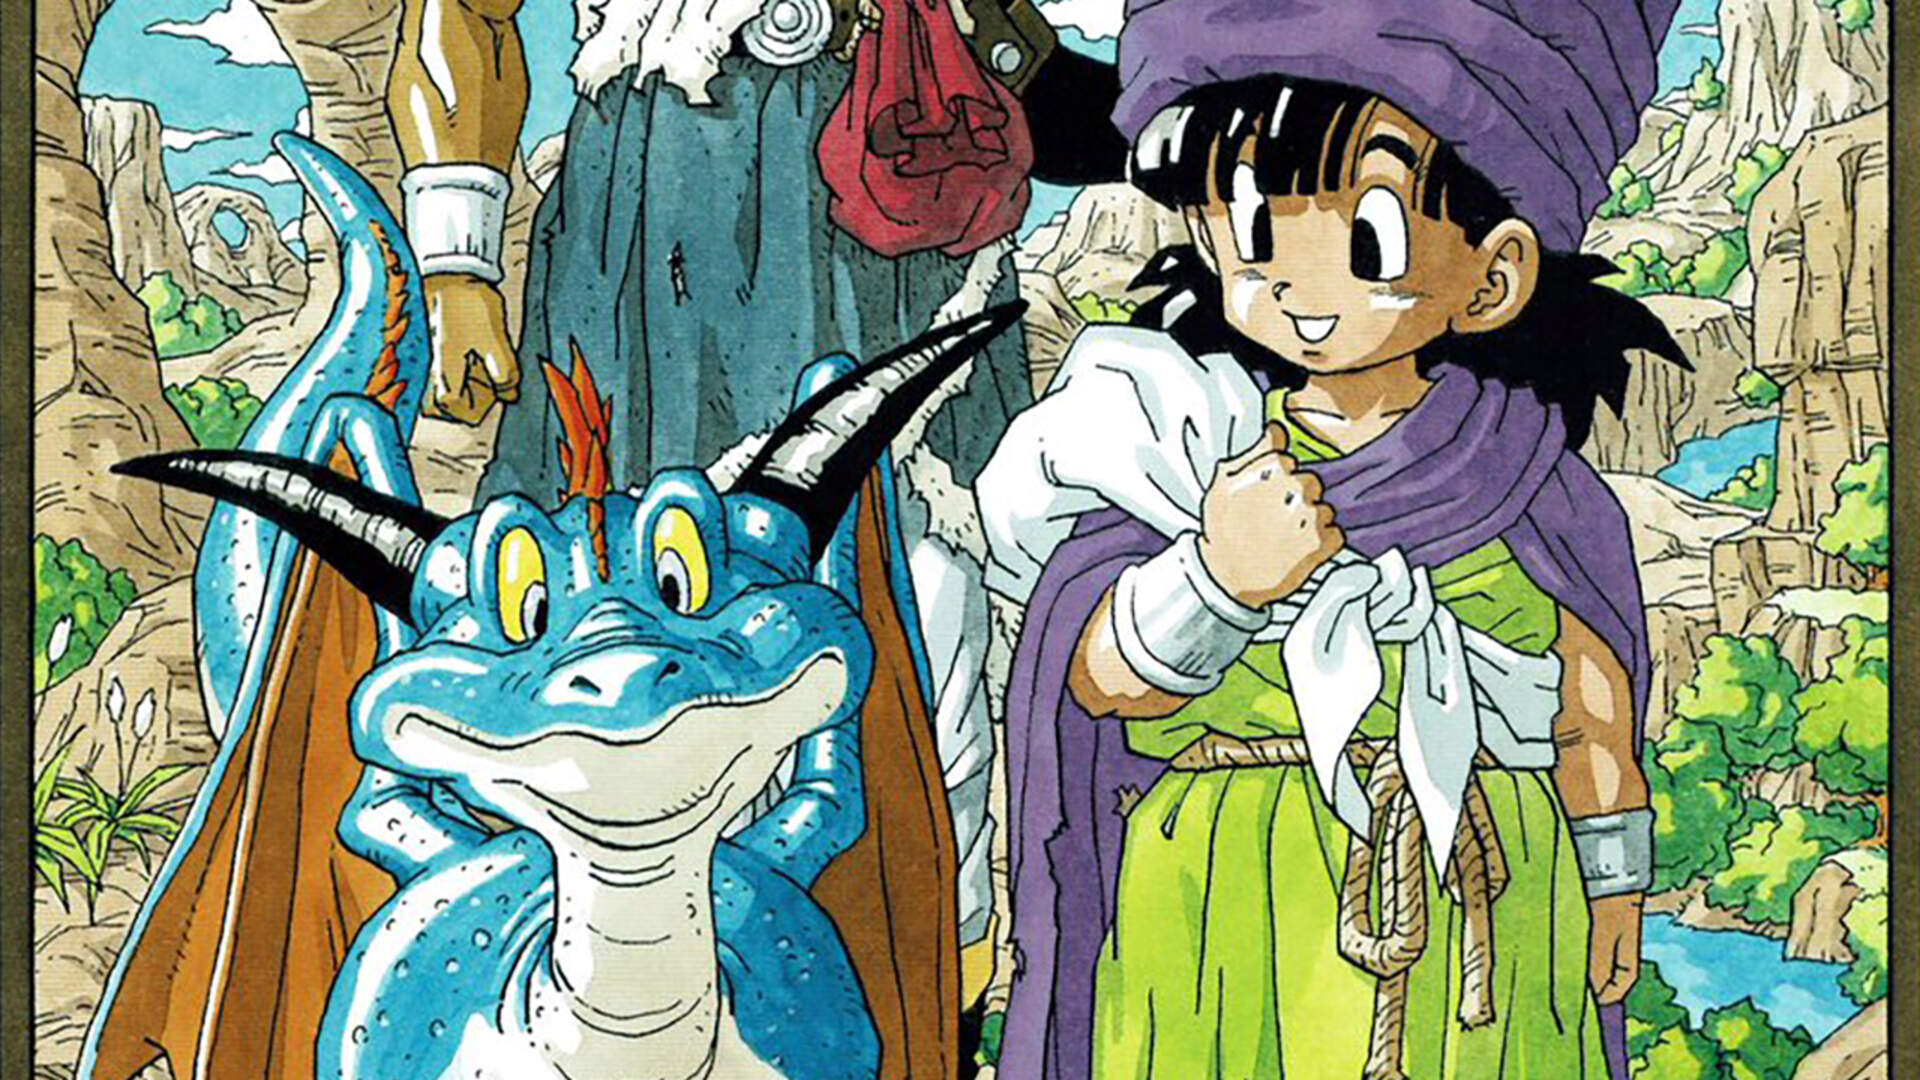 The Top 25 RPGs of All Time #8: Dragon Quest 5